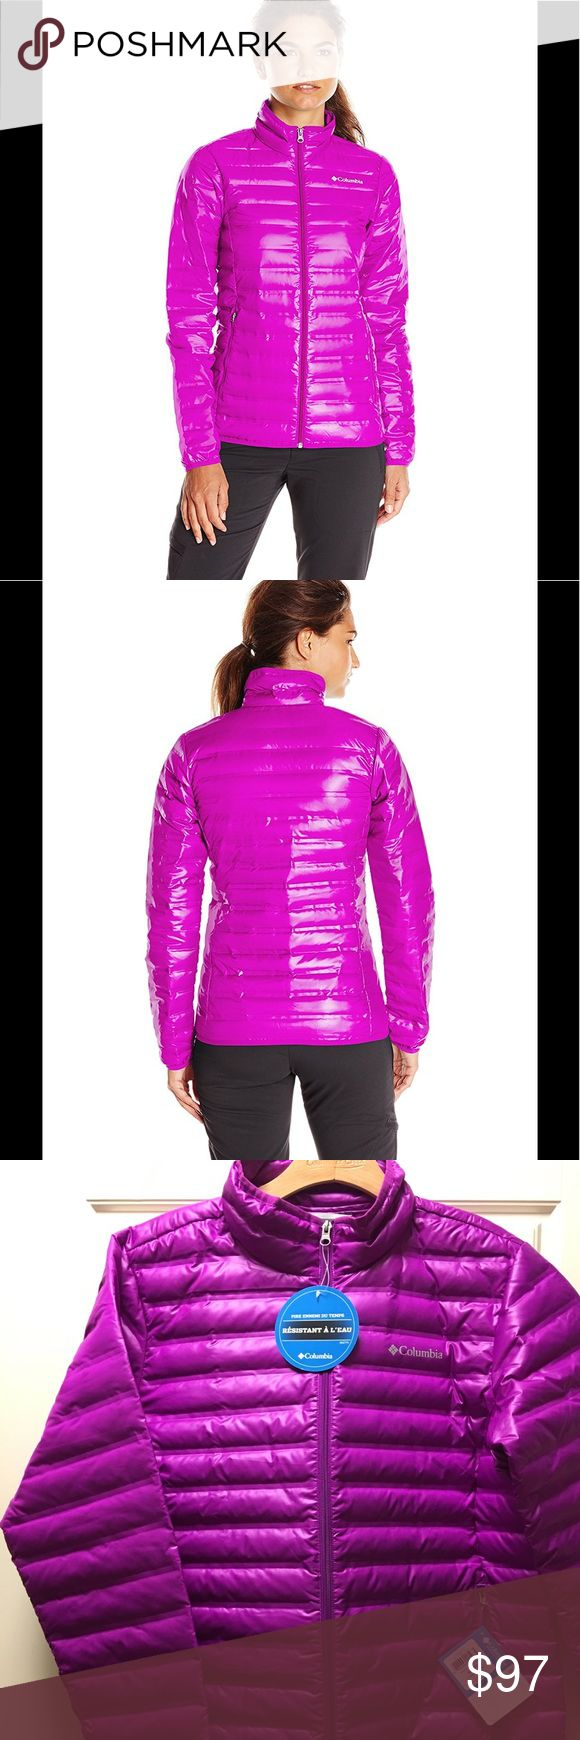 Columbia Women's Flash Forward Down Jacket Shell: 100% Polyester; Lining: 100% Polyester Imported Water resistant fabric 650 fill power down insulation Zippered hand pockets Binding at cuffs Water resistant fabric 650 fill power down Insulation Zippered hand pockets Binding at hem Color: Bright Plum Columbia Jackets & Coats Utility Jackets